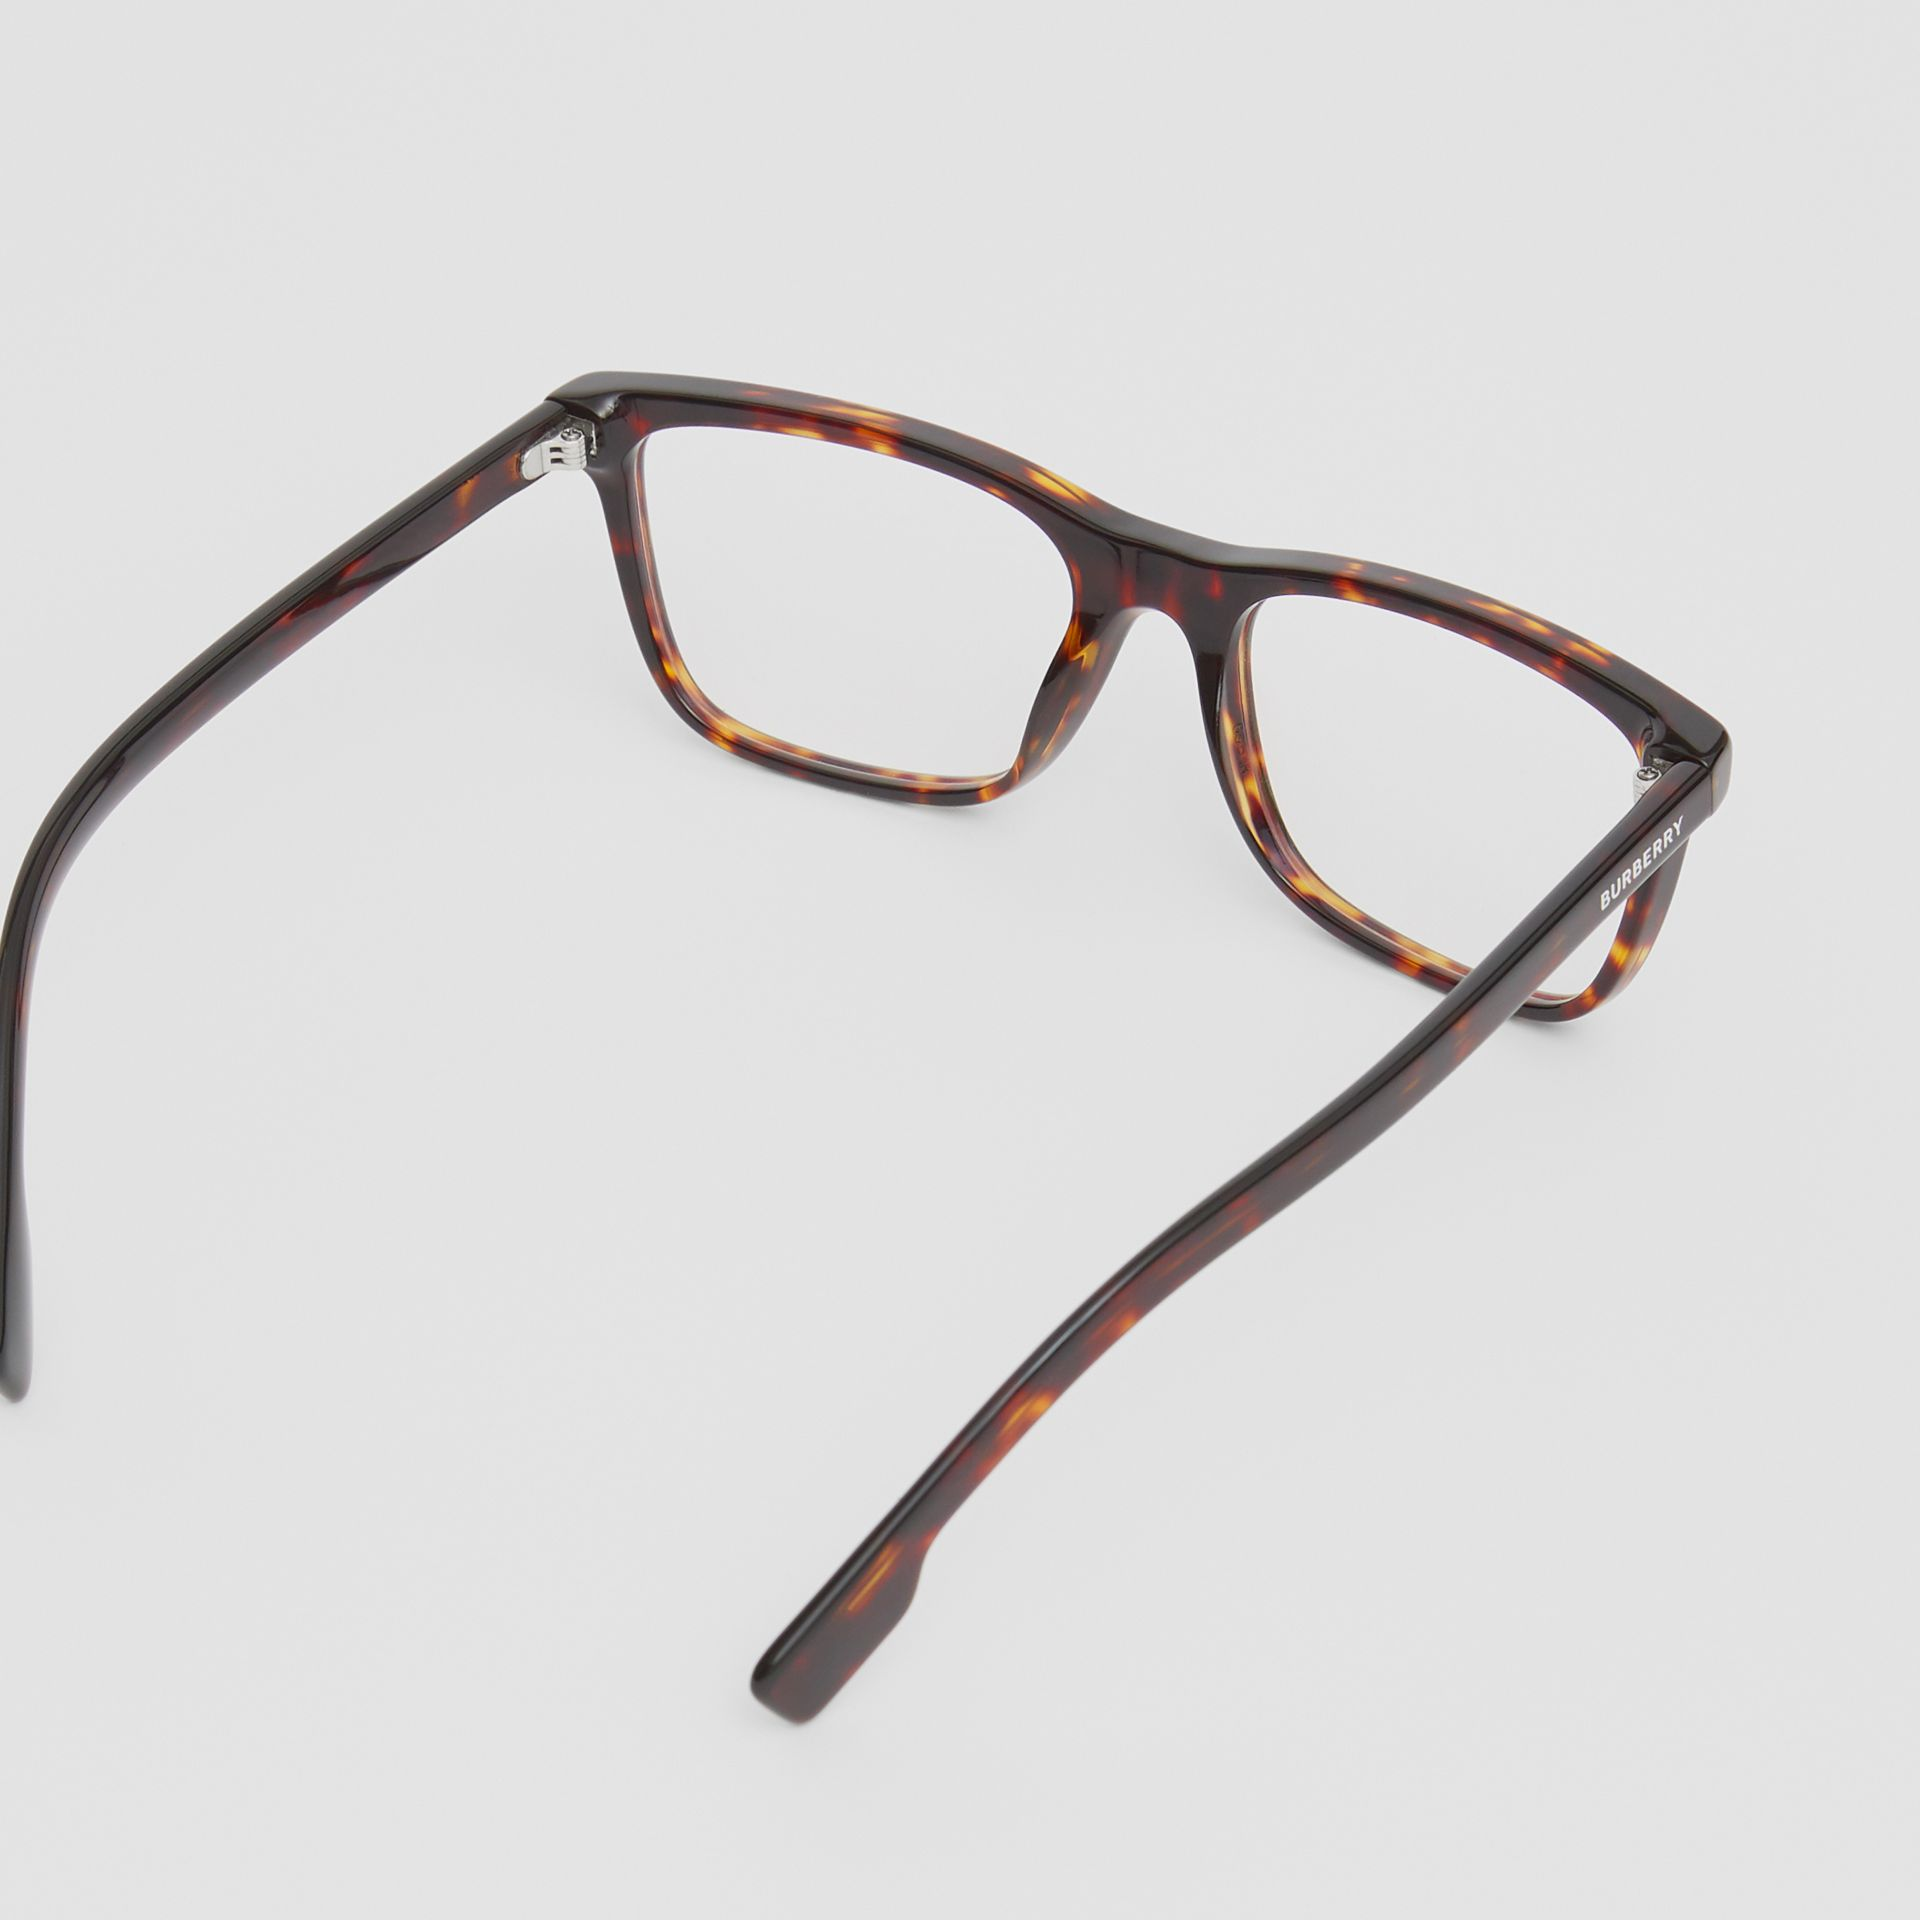 Rectangular Optical Frames in Tortoiseshell - Men | Burberry - gallery image 4